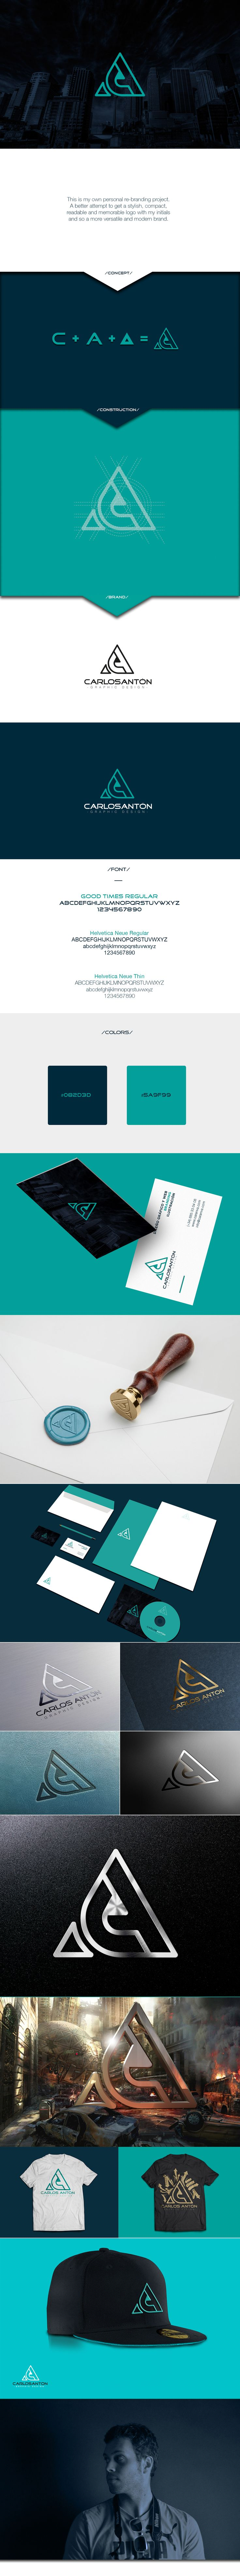 best ideas about personal branding examples personal branding carlos antoacuten on behance